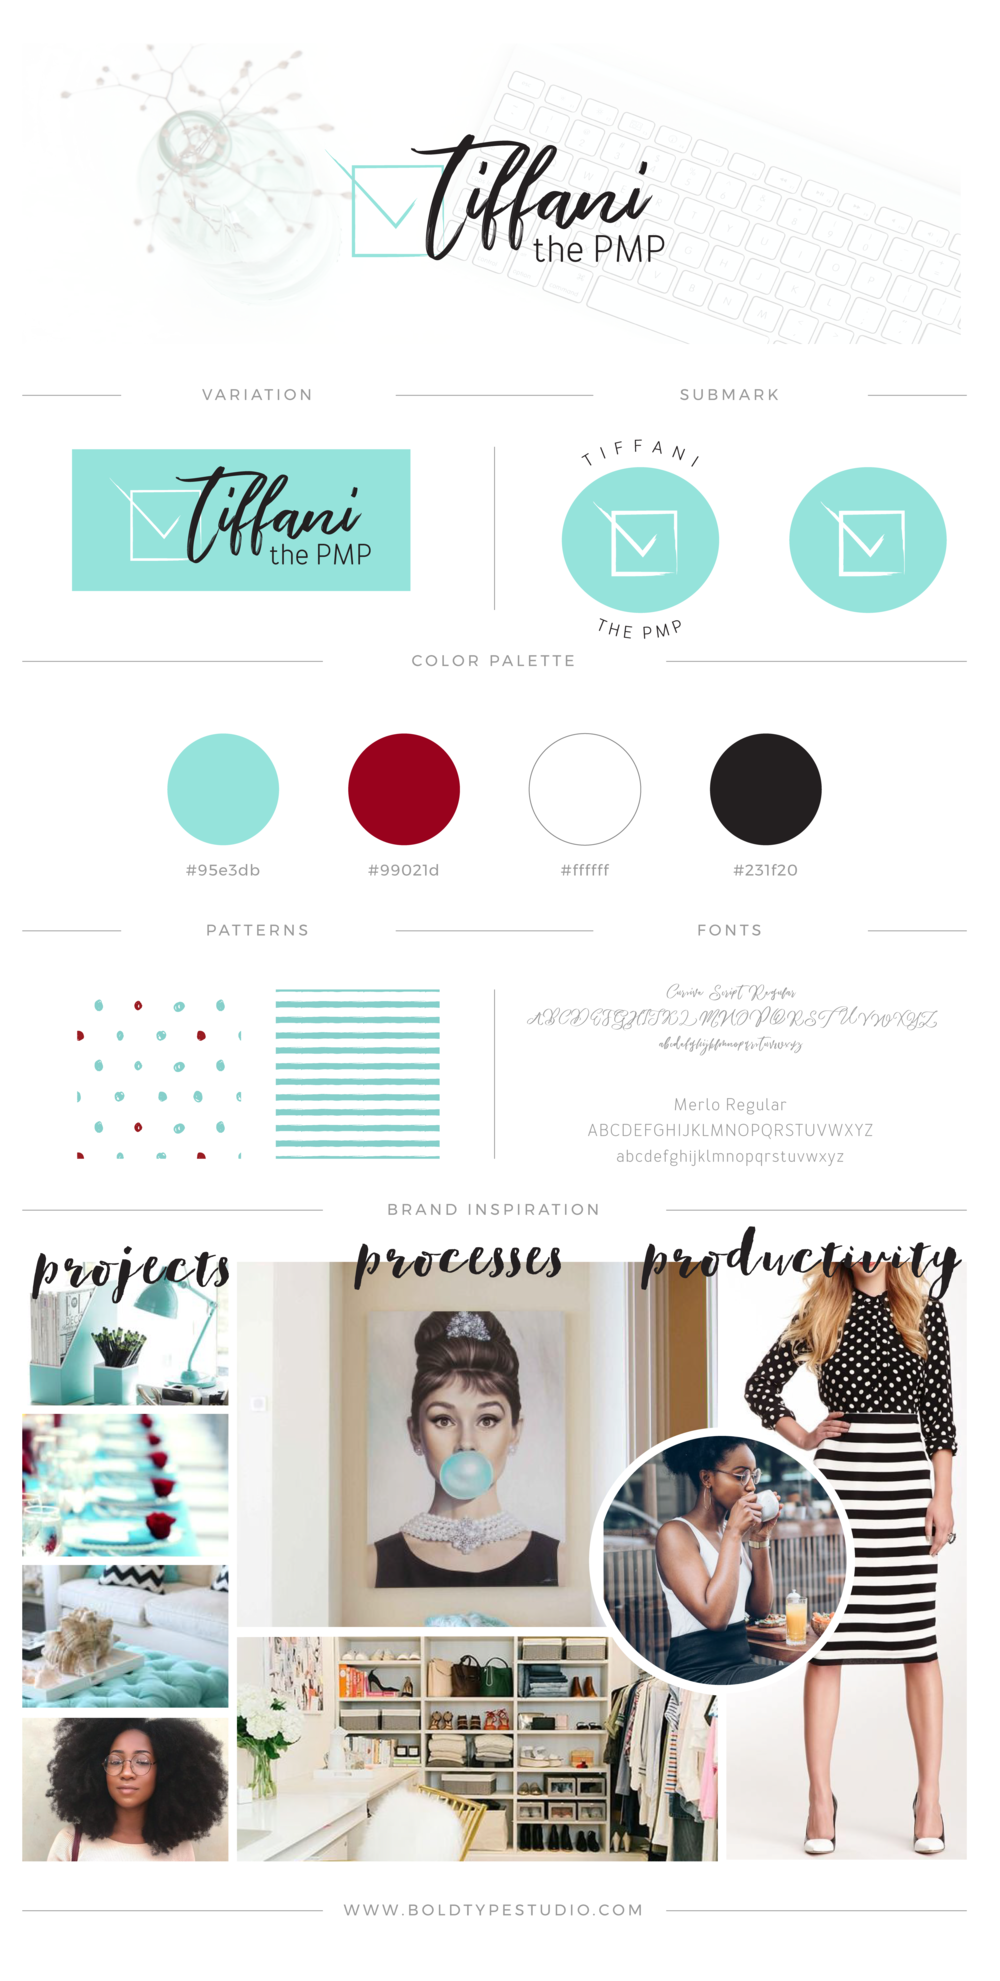 Brand Style Guide for Tiffani the PMP - a Project Management Professional based in the US